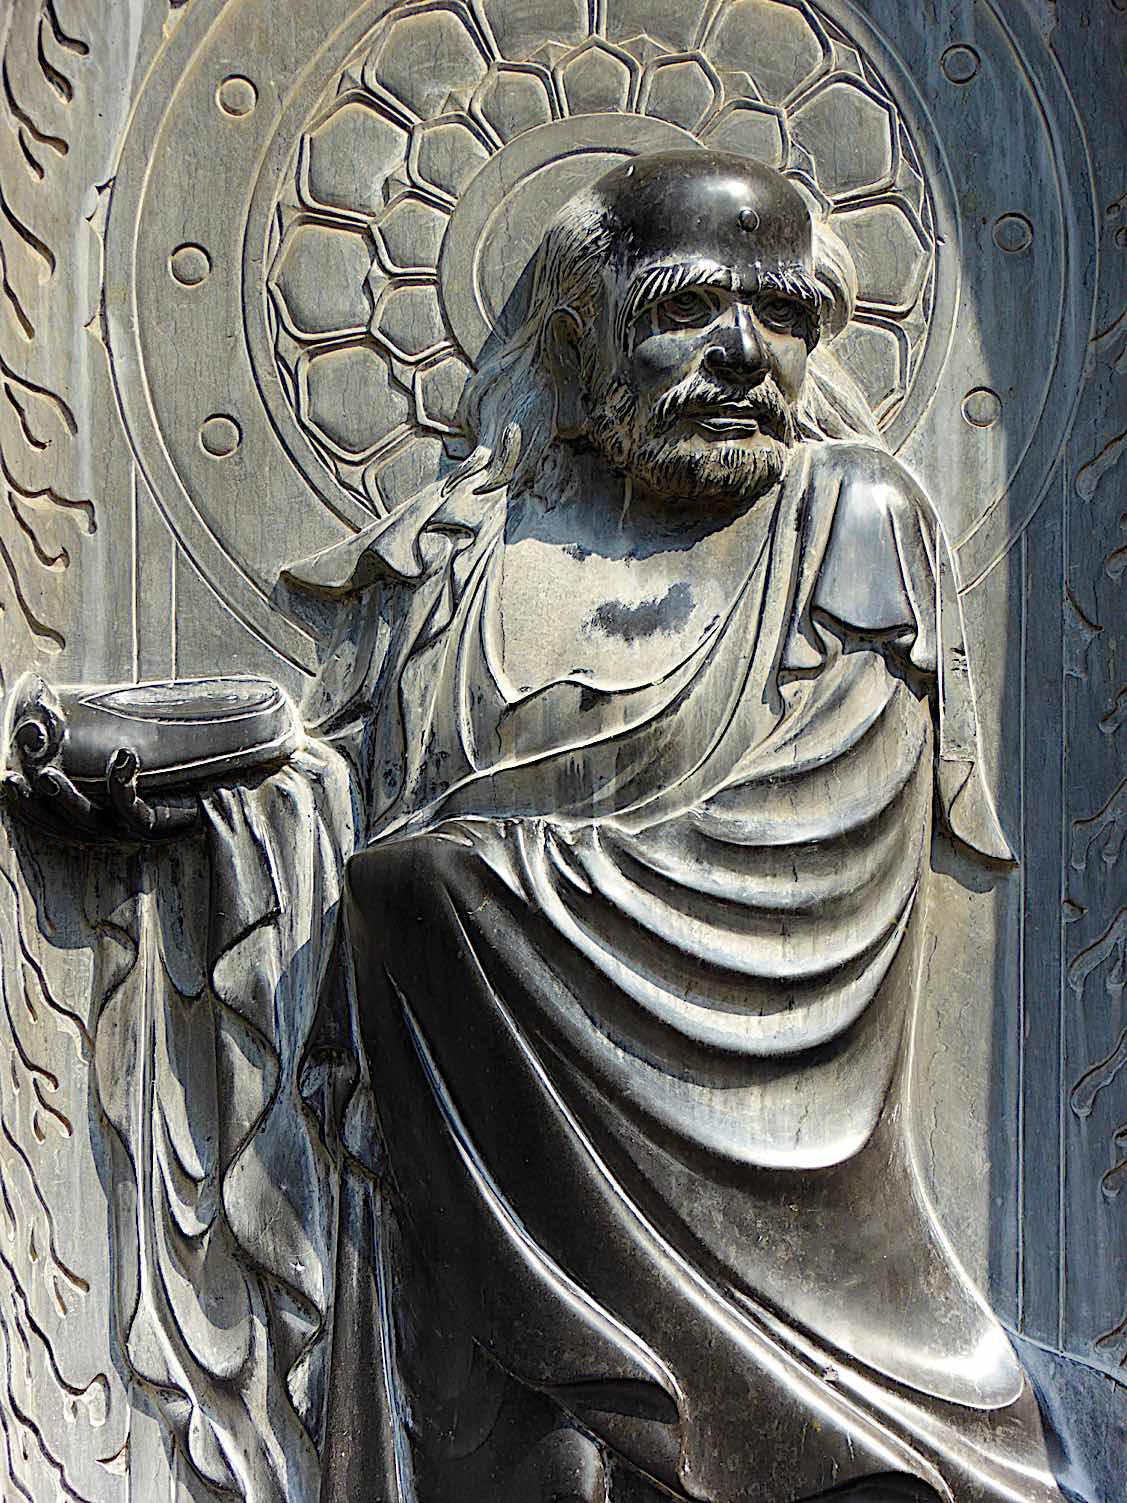 Buddha Weekly Bodhidharma founder of Chan a statue in Shaolin Temple Songshan Denfeng City Henan Province China Buddhism